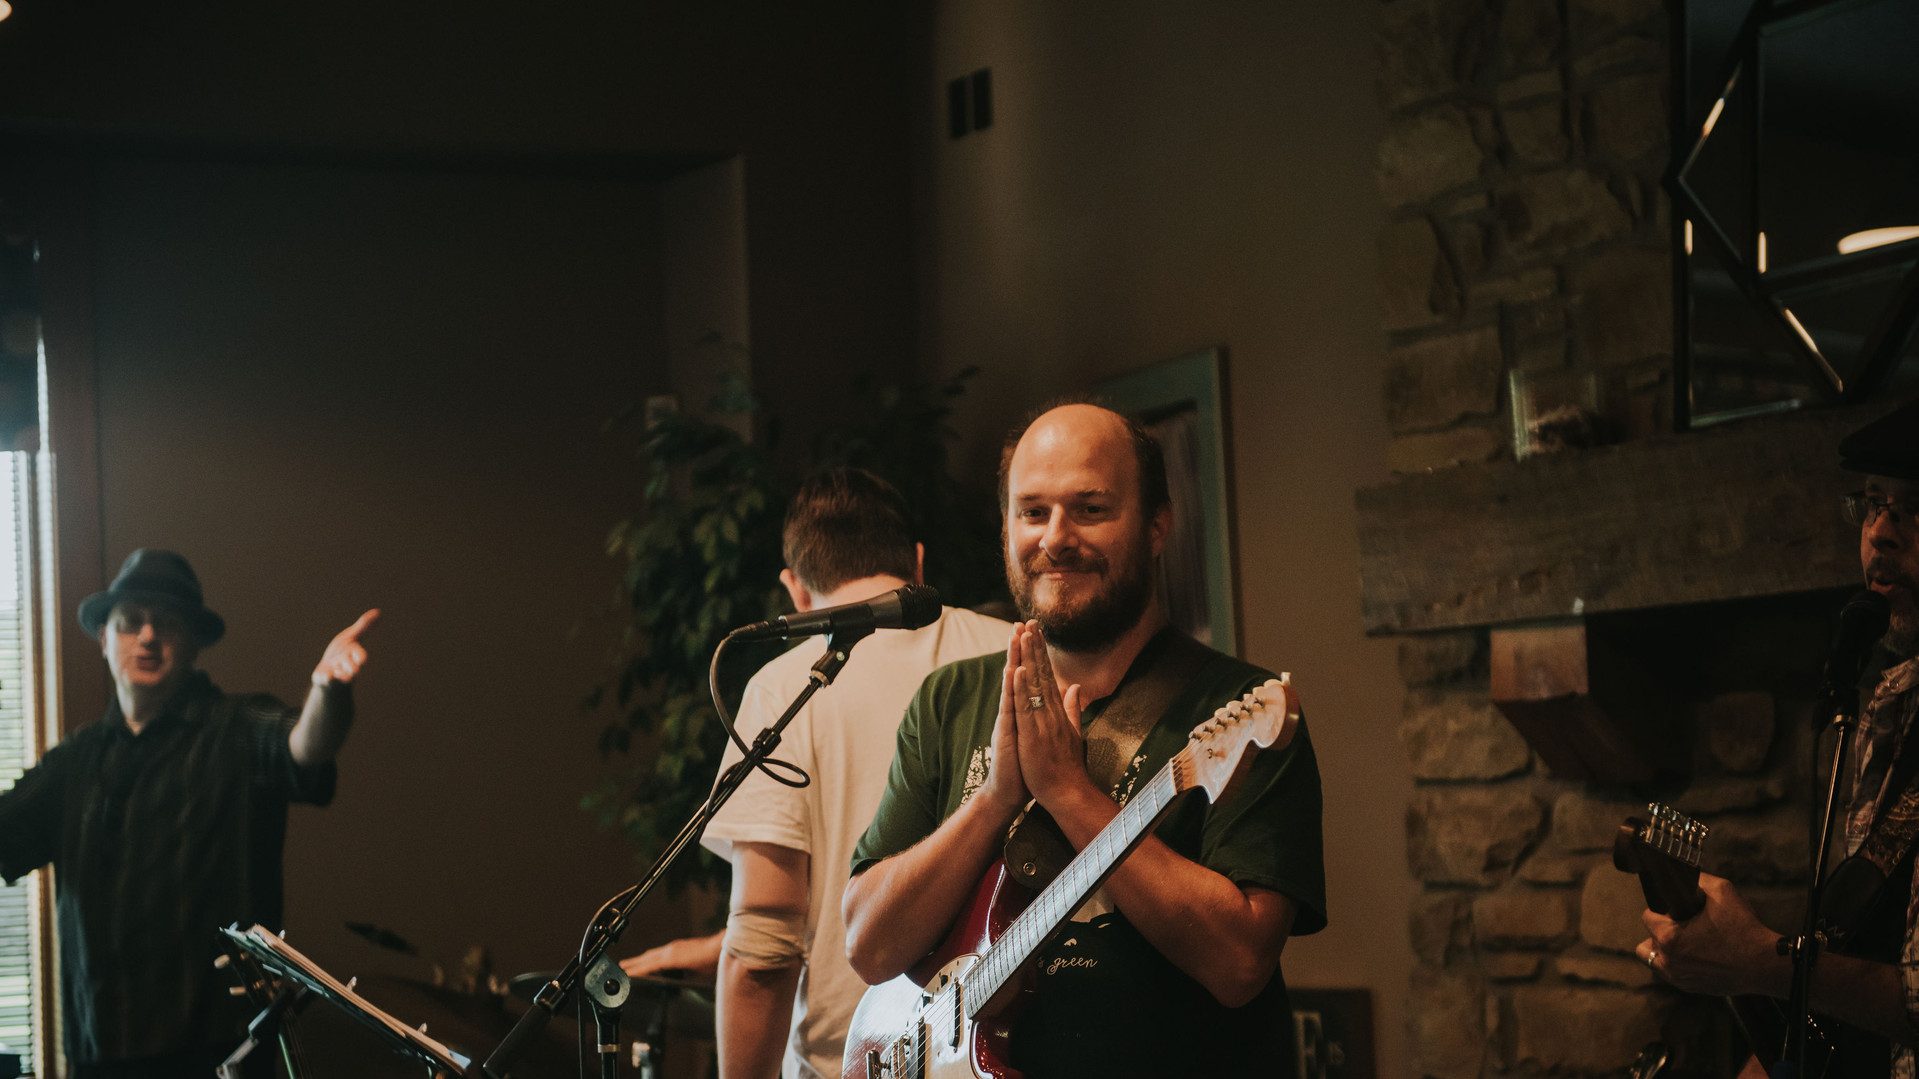 Brown County kids' favorite musician: Nathan Dillon and The Acre Brothers